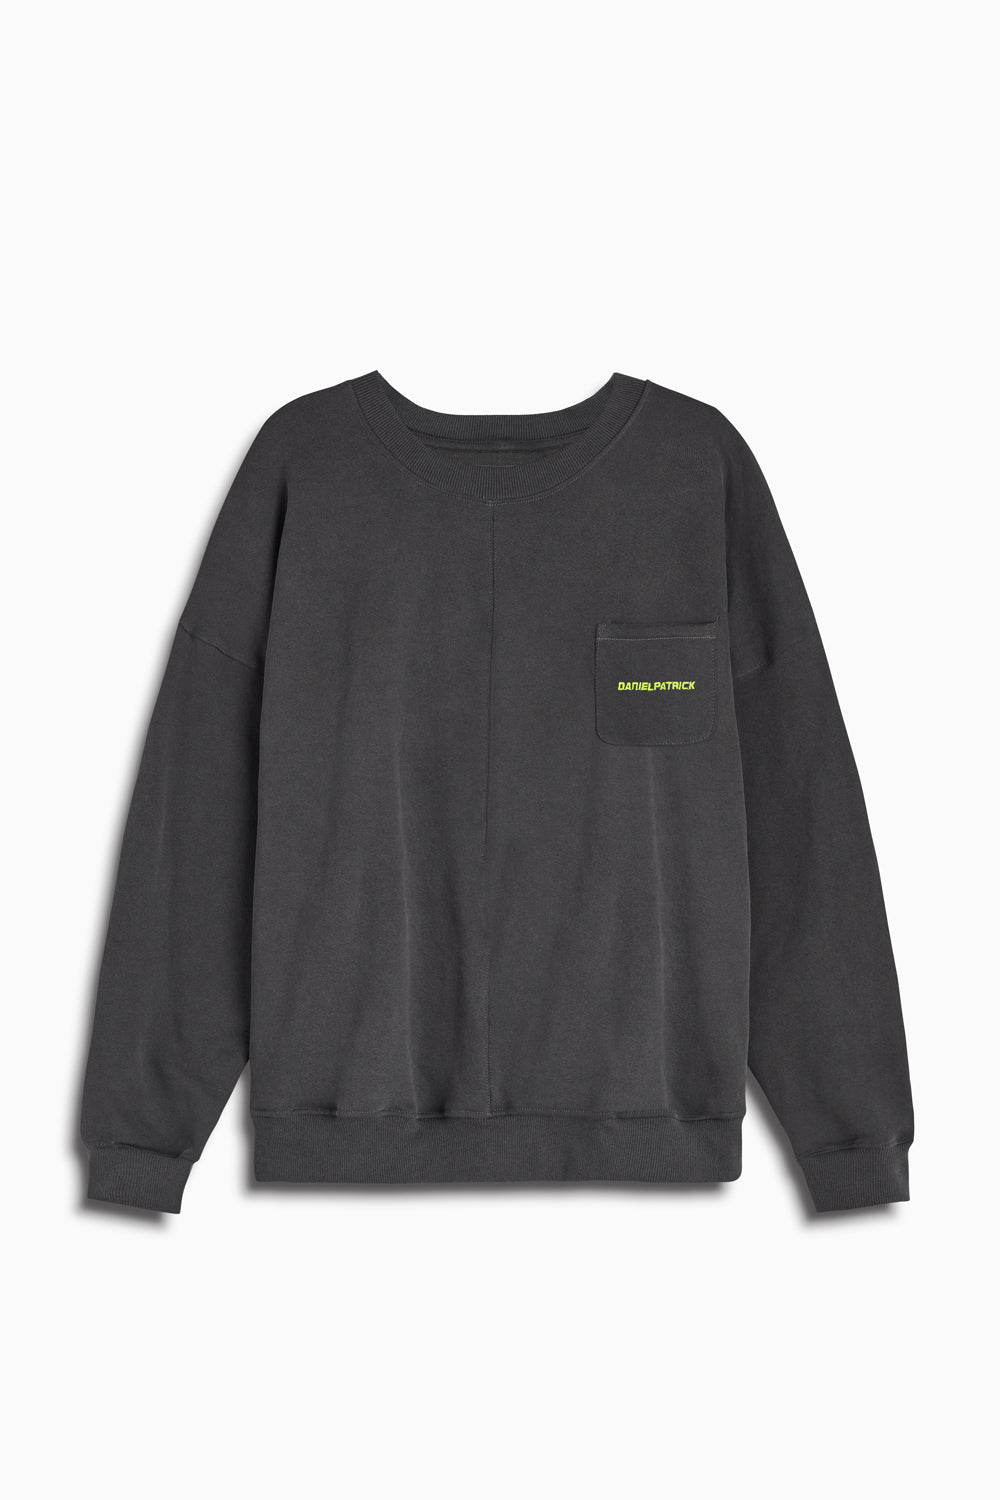 pocket crew sweat ii in vintage black/lime by daniel patrick